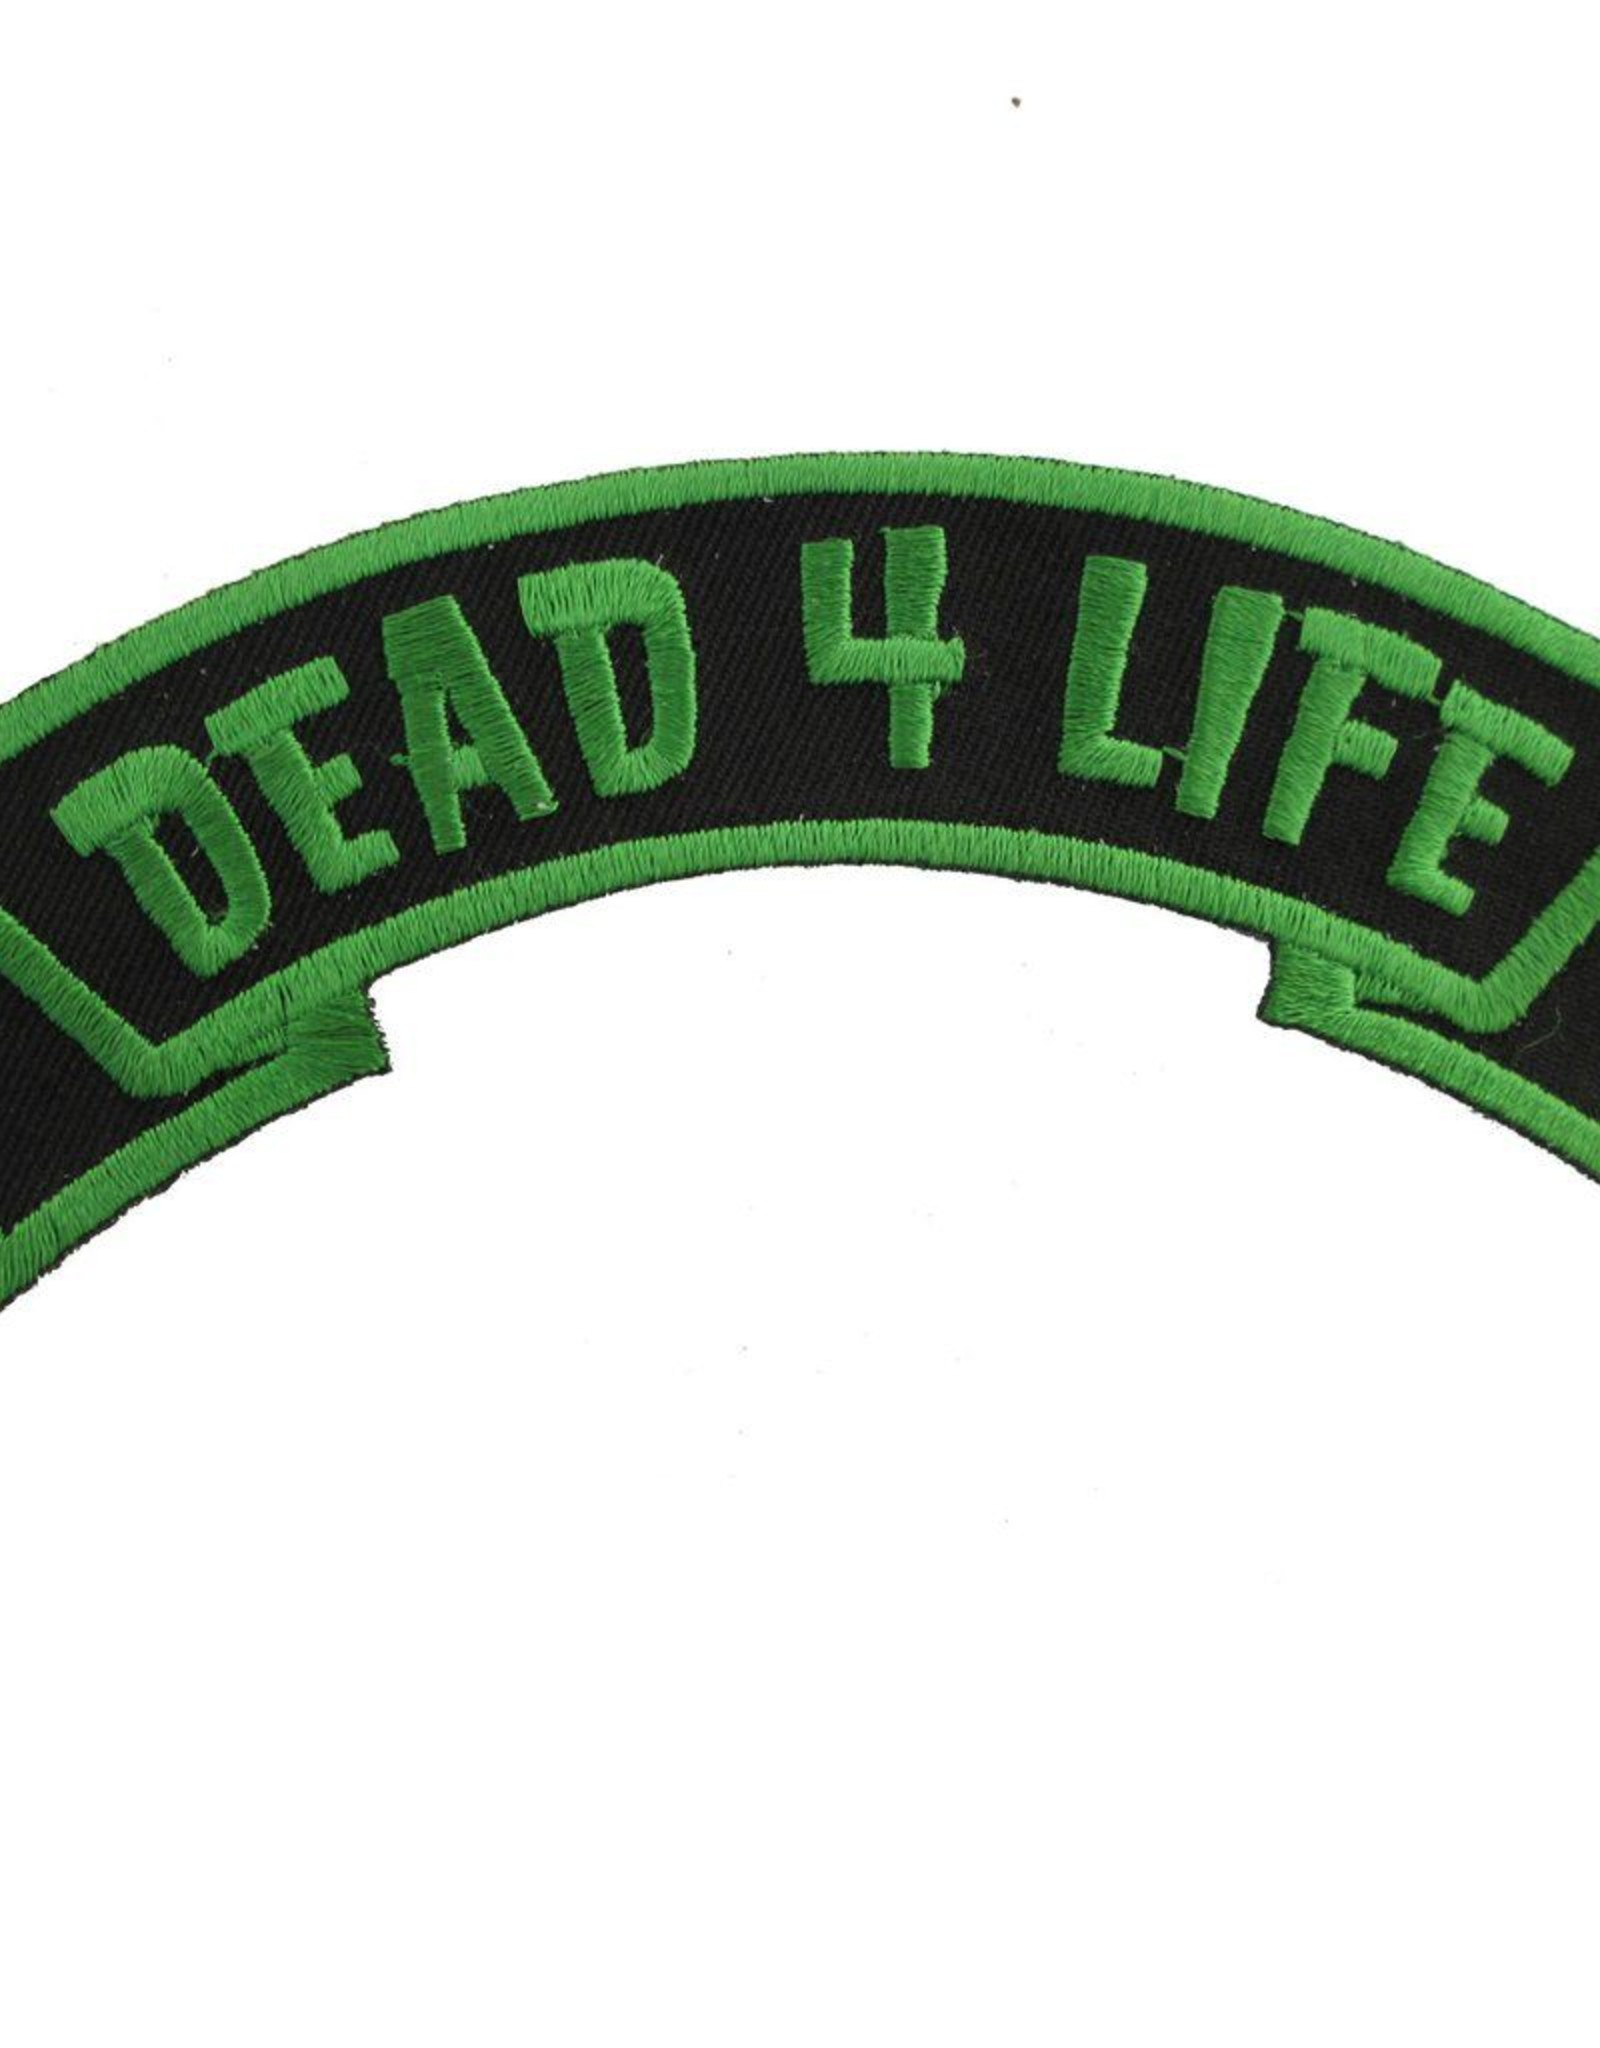 Arch Dead 4 Life Patch